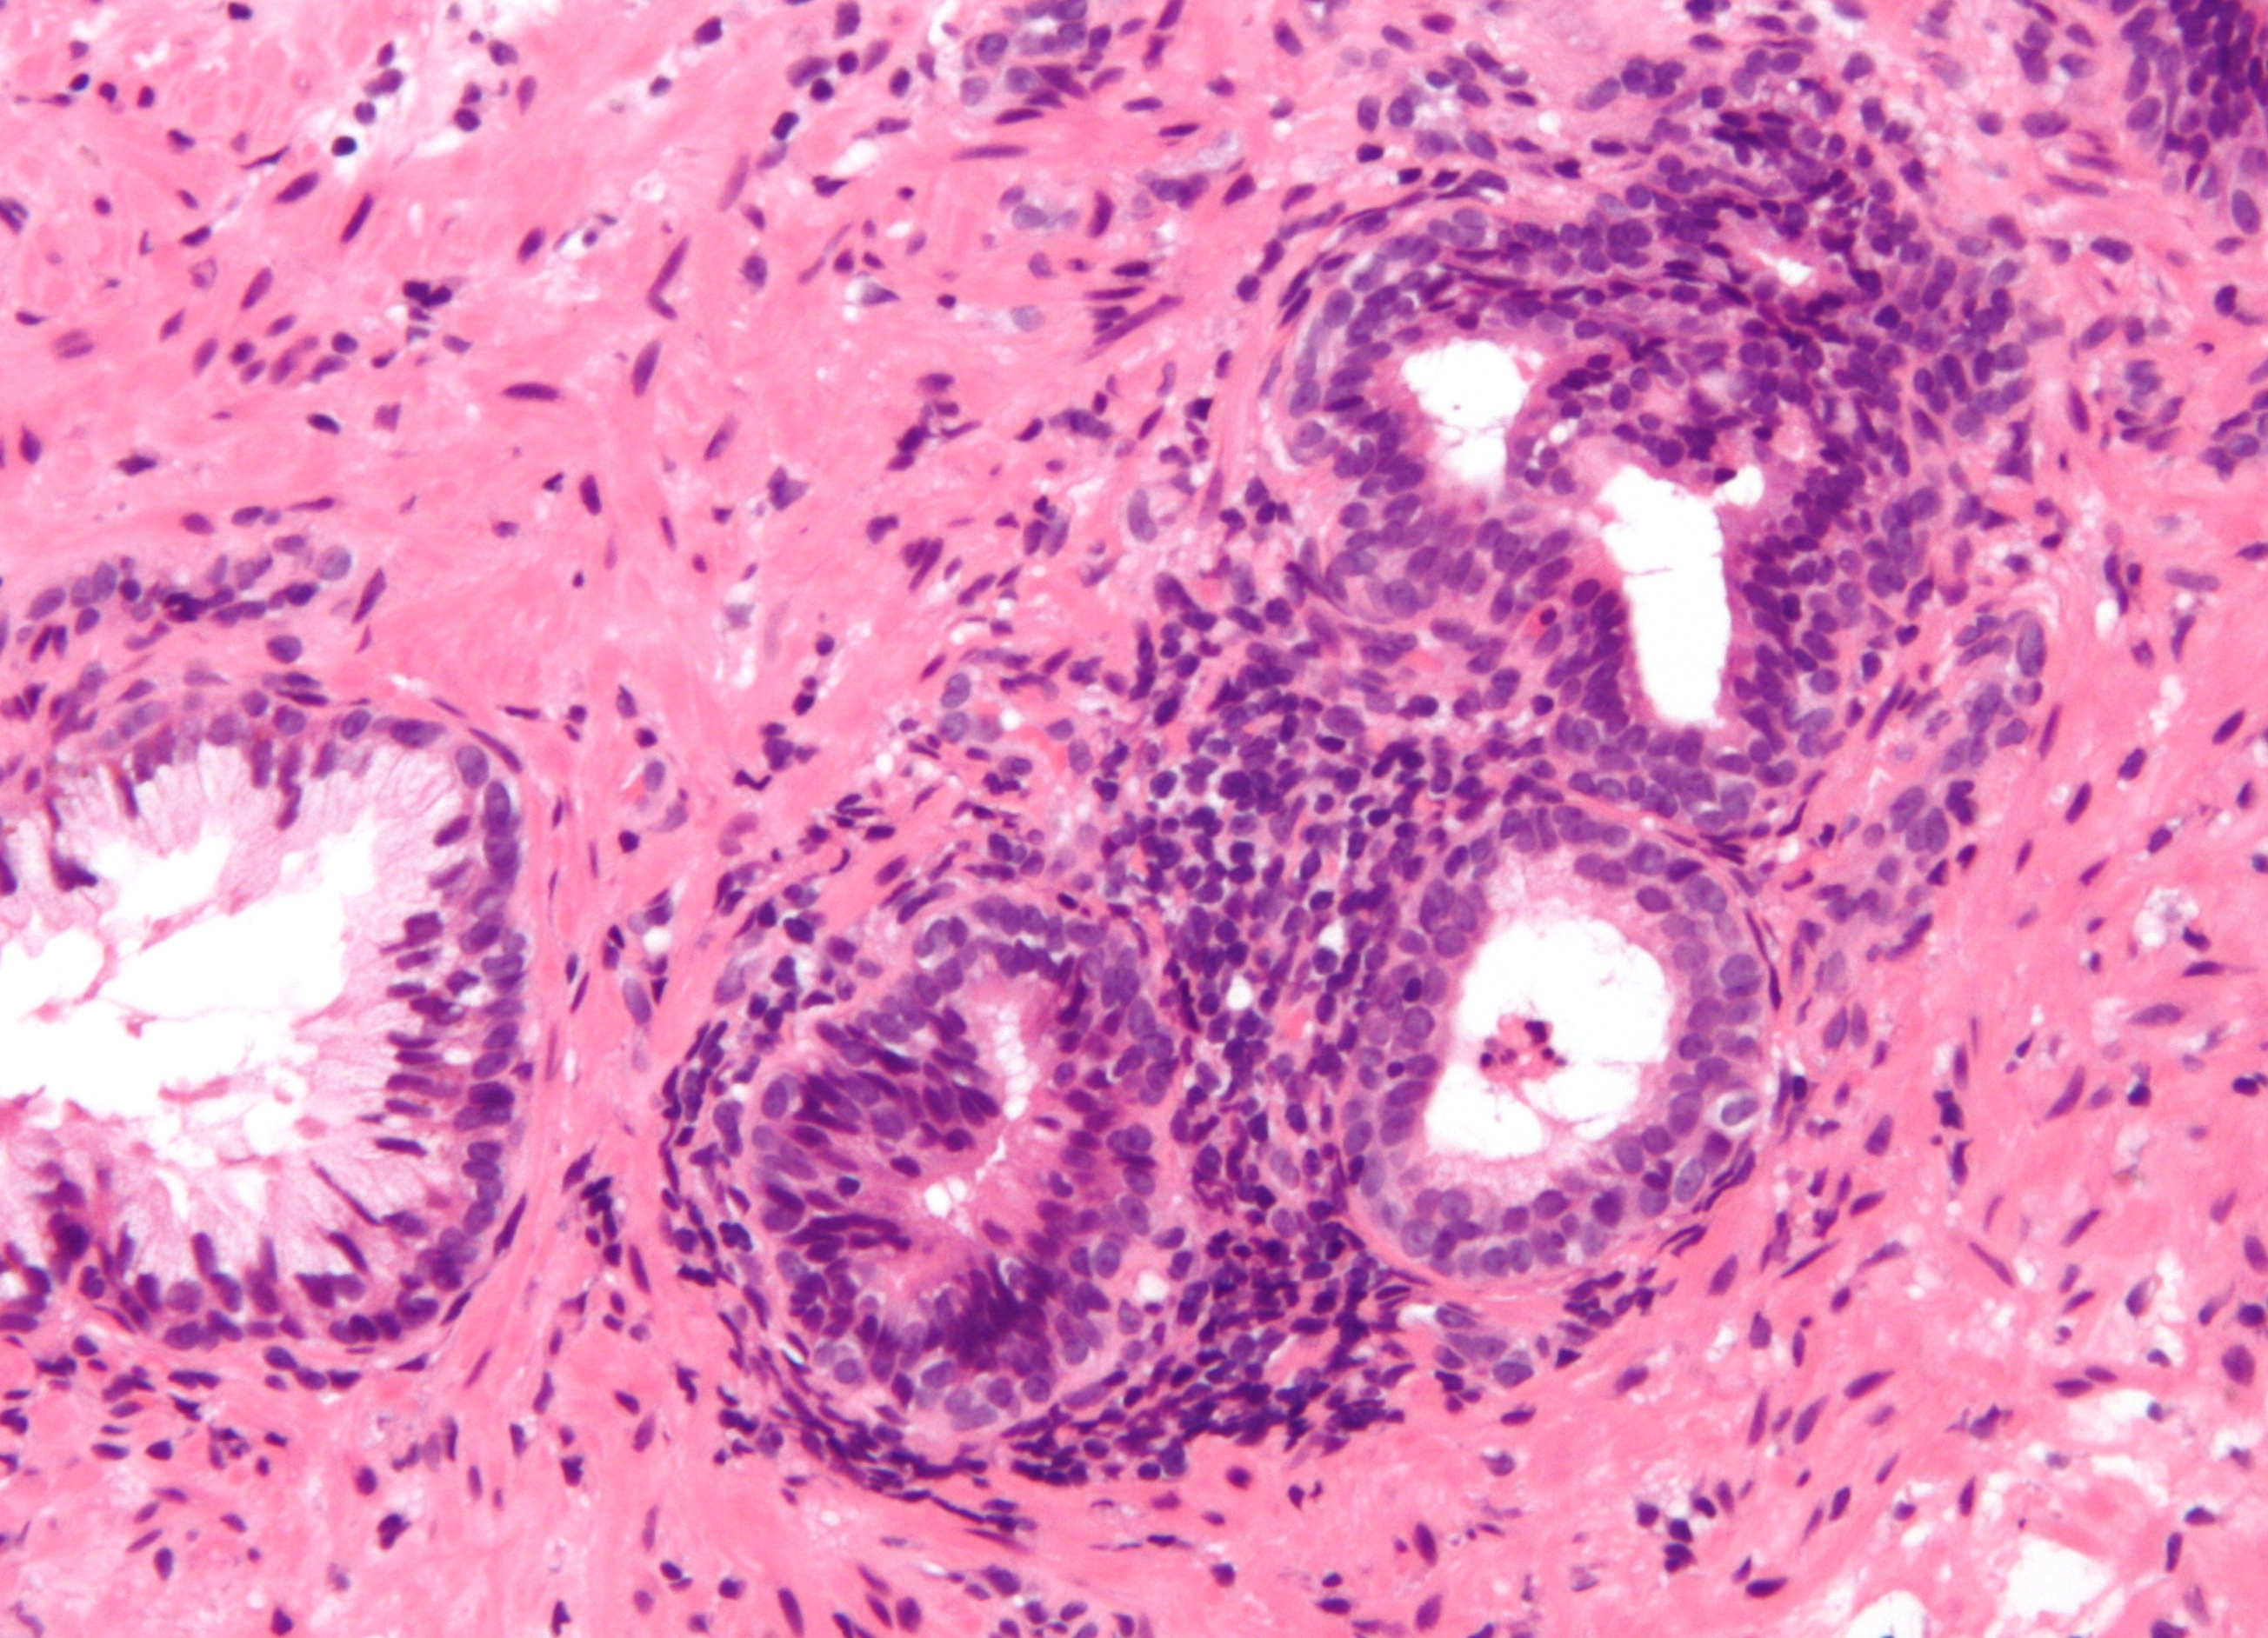 File:Inflammation of prostate.jpg